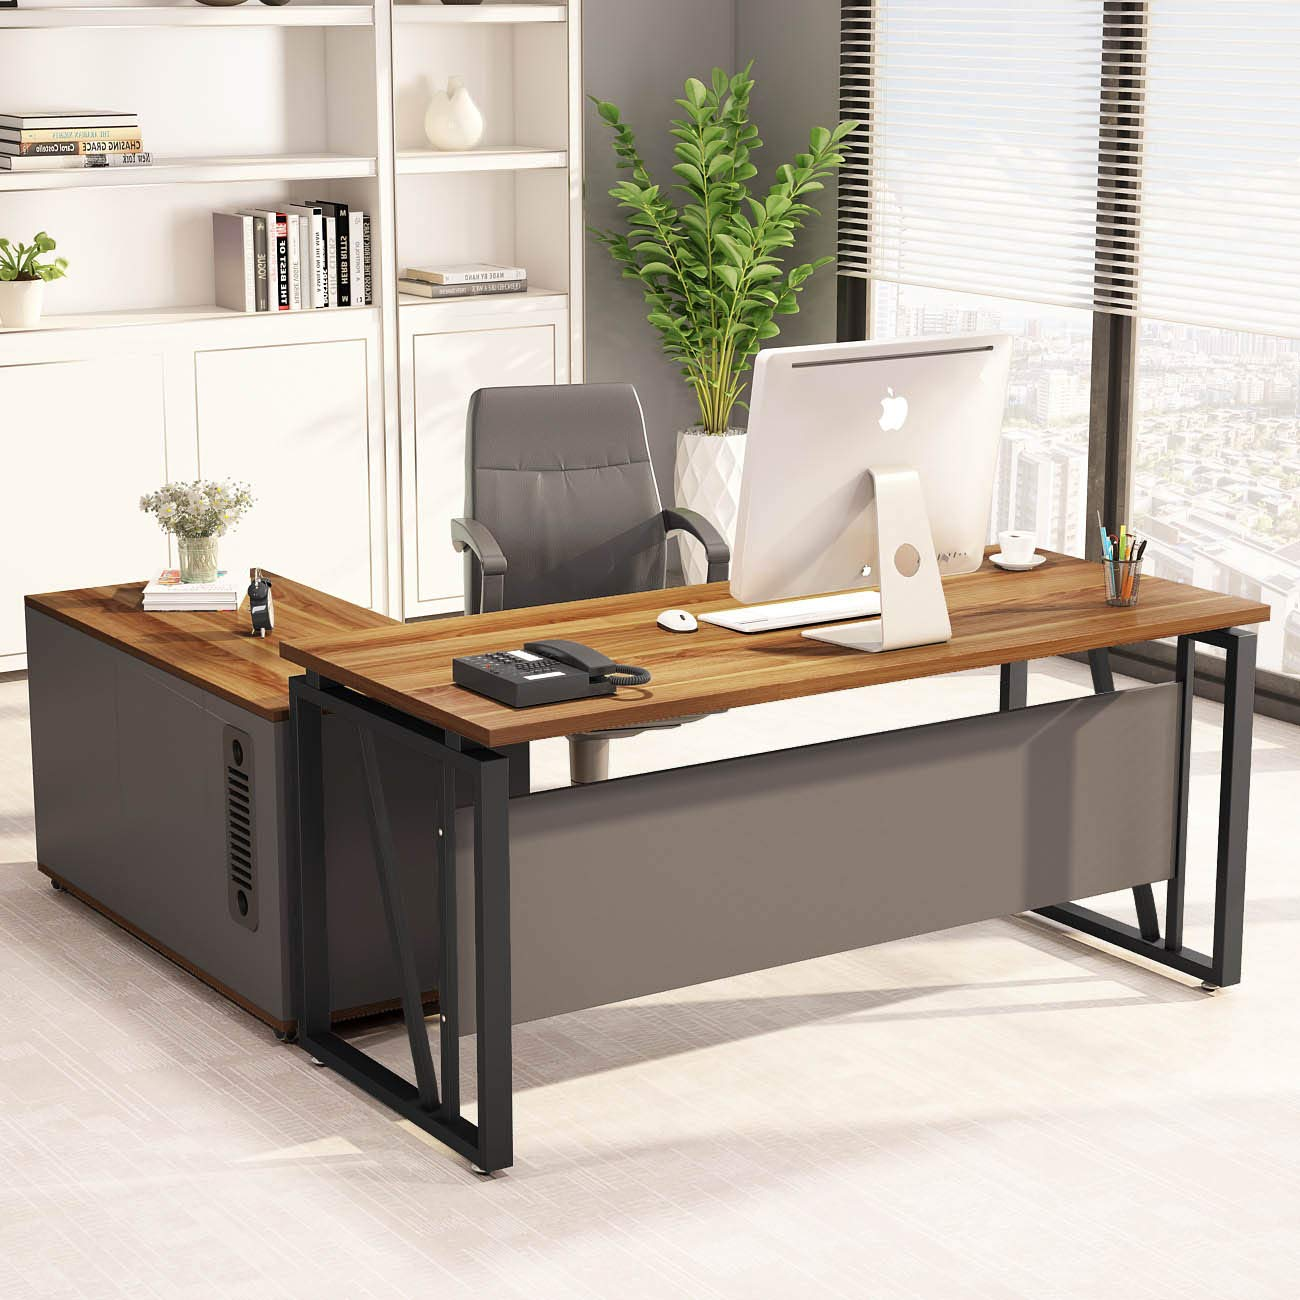 "LITTLE TREE L-Shaped Computer Desk, 55 inches Executive Desk Business Furniture with 39"" File Cabinet Storage Mobile Printer Filing Stand for Office Dark Walnut"